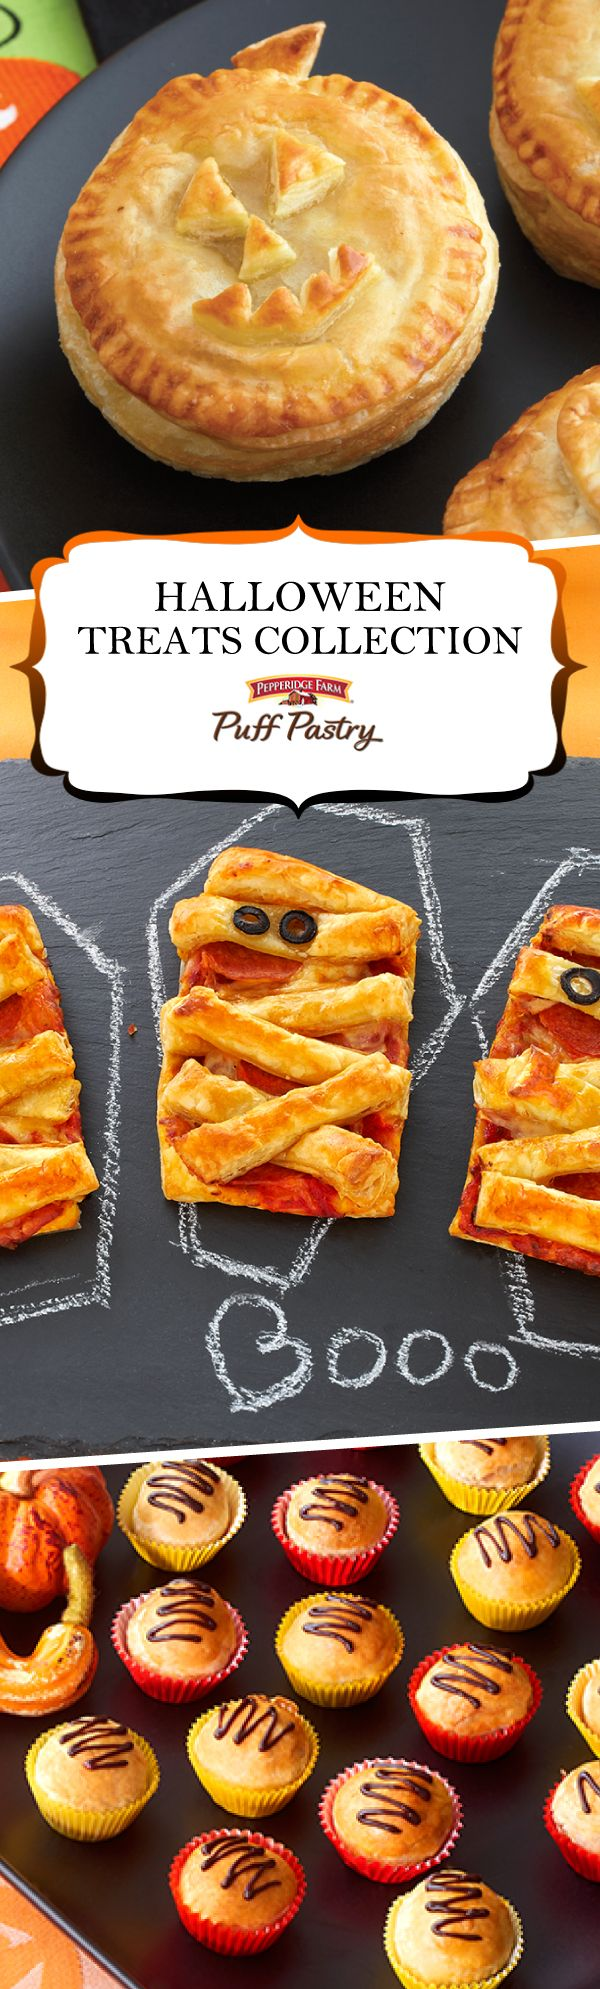 Pepperidge Farm Puff Pastry Halloween Treats Recipe Collection. Scare up some fun with these spook-tacular Halloween recipes. Party guests will have a frighteningly good time devouring Wicked Dessert Puffs, kids will love Mummy Pizzas before trick-or-treating and don't miss the recipe for Candy Bar Puffs (perfect for those leftover bags of candy!)